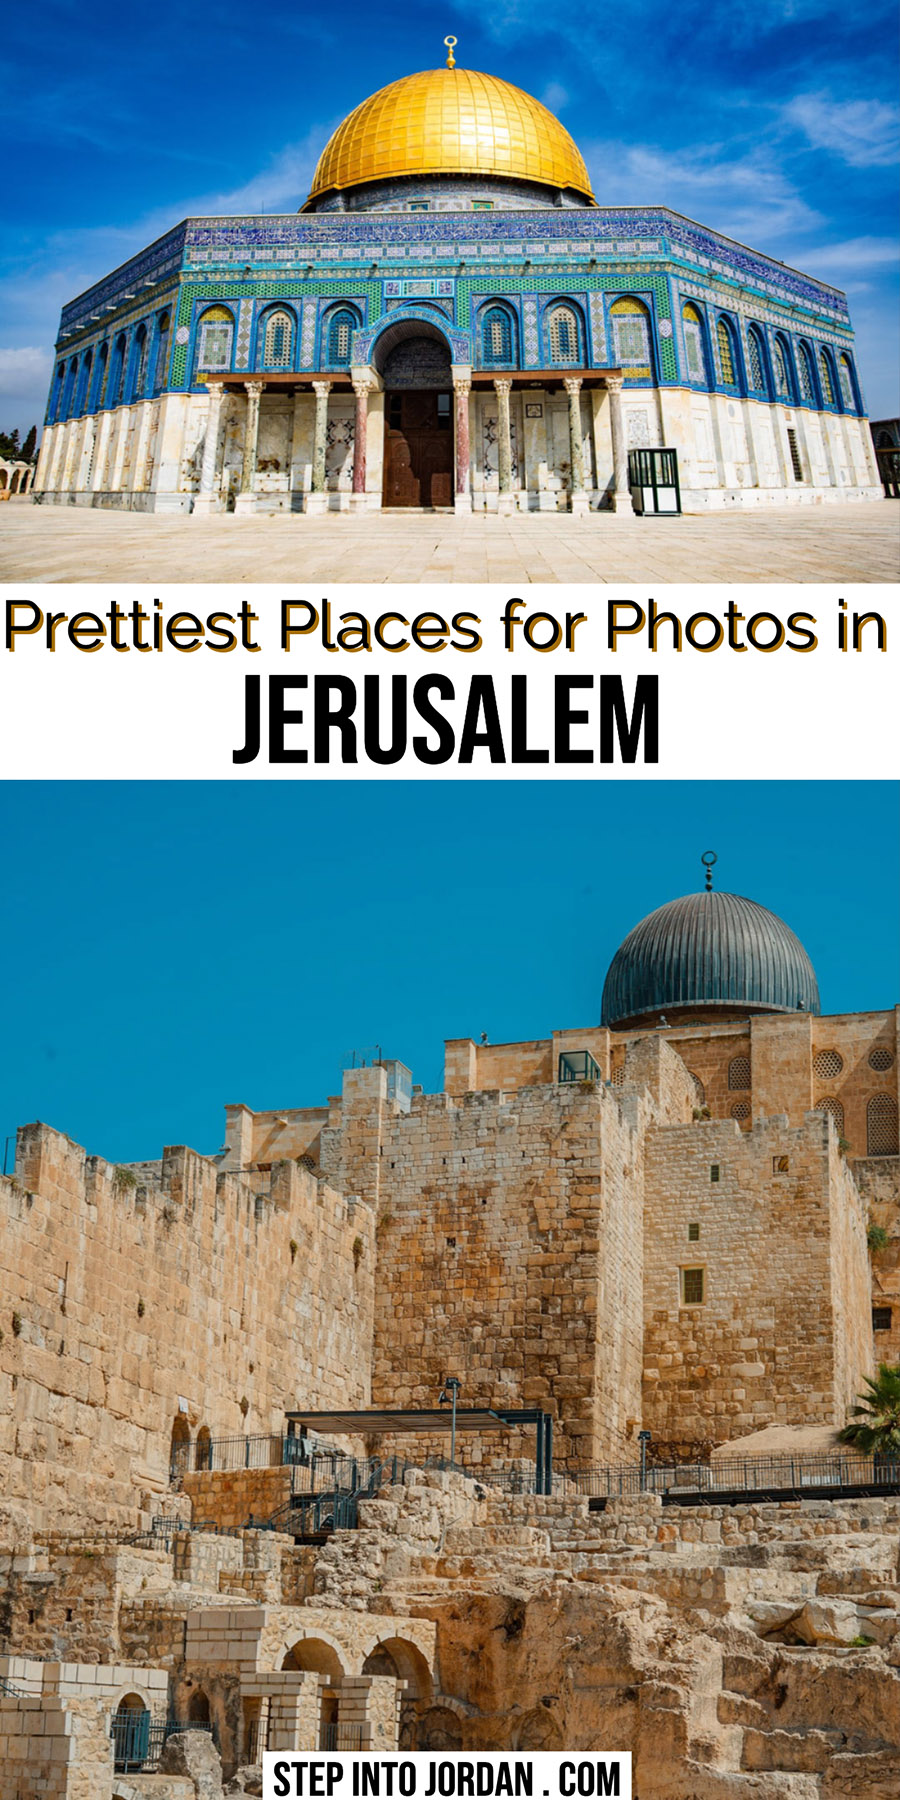 Instagrammable Places in Jerusalem